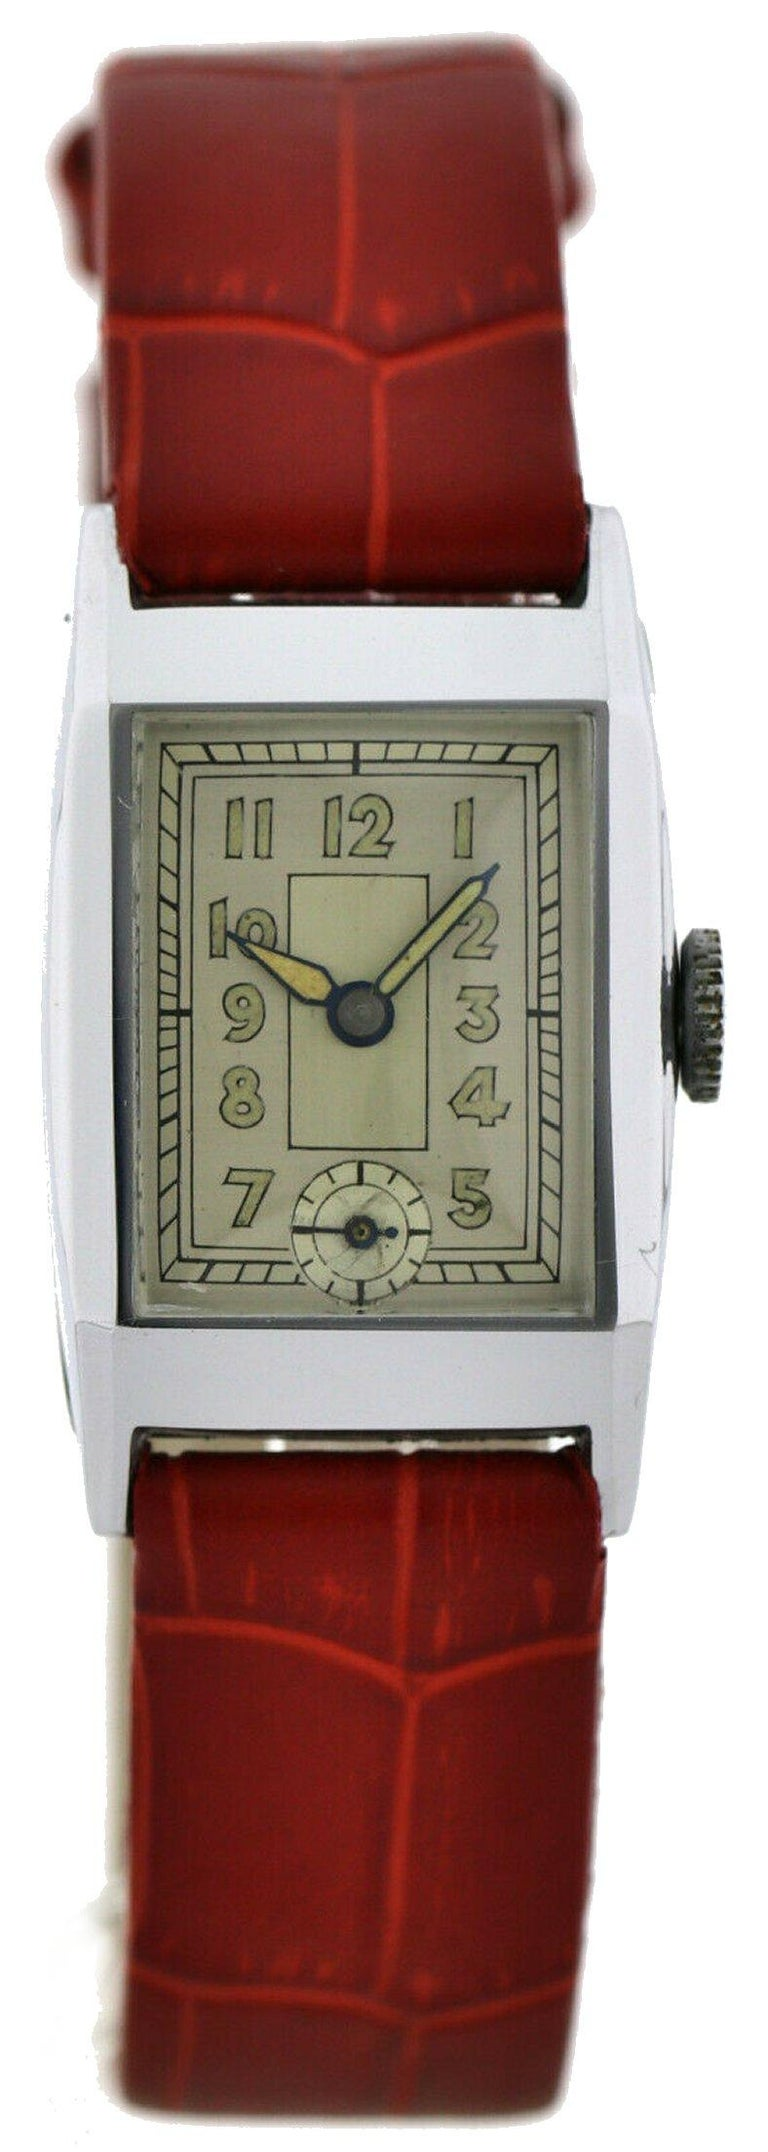 Art Deco Gents Chrome Wristwatch Old Stock, Never Worn, Newly Serviced, 1930 For Sale 5